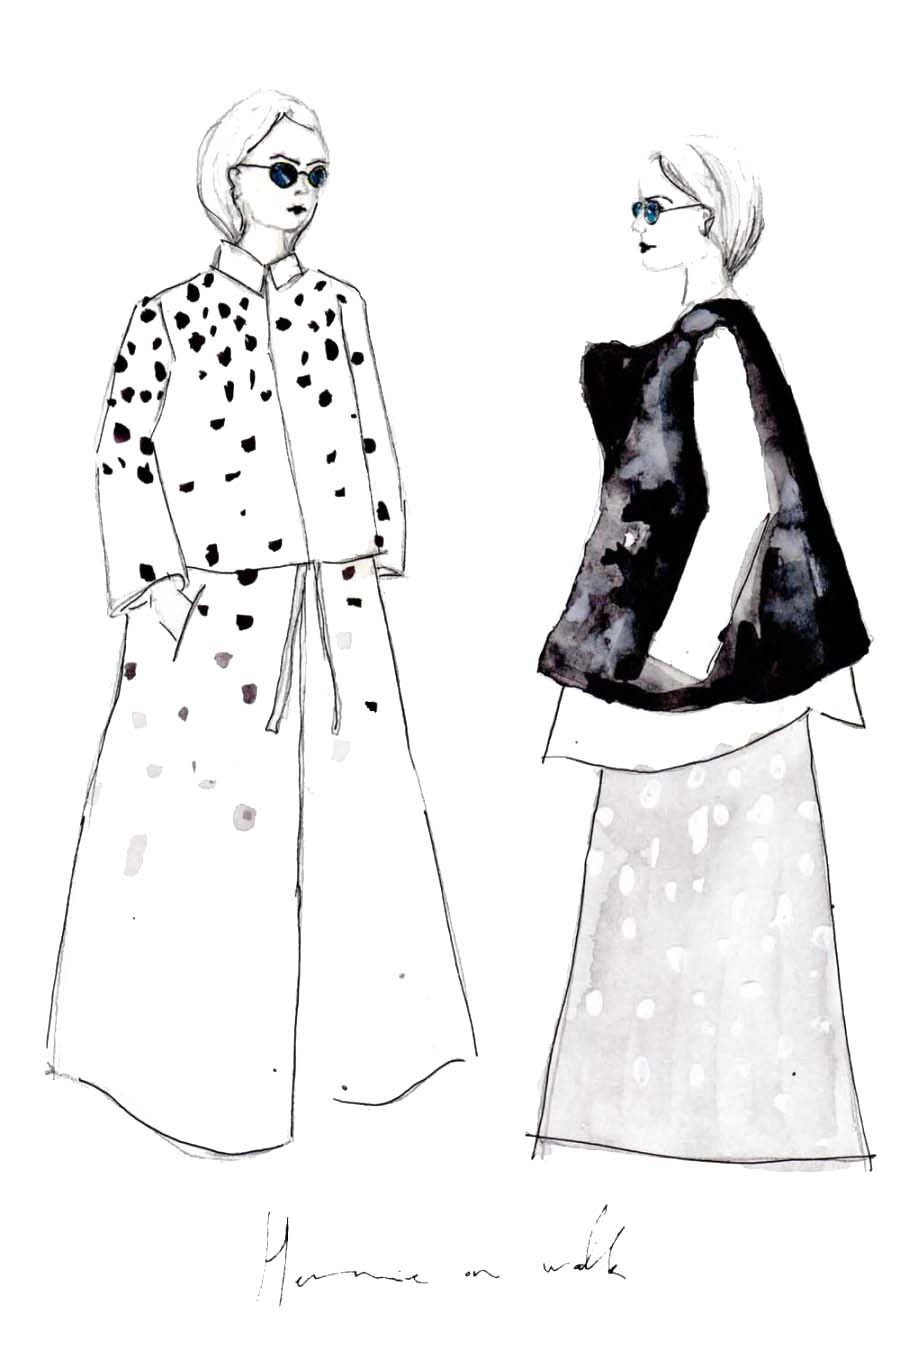 Erfahre, wie du deine deine eigenen Modezeichnungen erstellen kannst und auf was du achten musst + einfach Erklärung in 3 Schritten. Fashion Illustrations | Fashionsketch | Fashionsketchbook | ModeIillustration | Hermine on walk